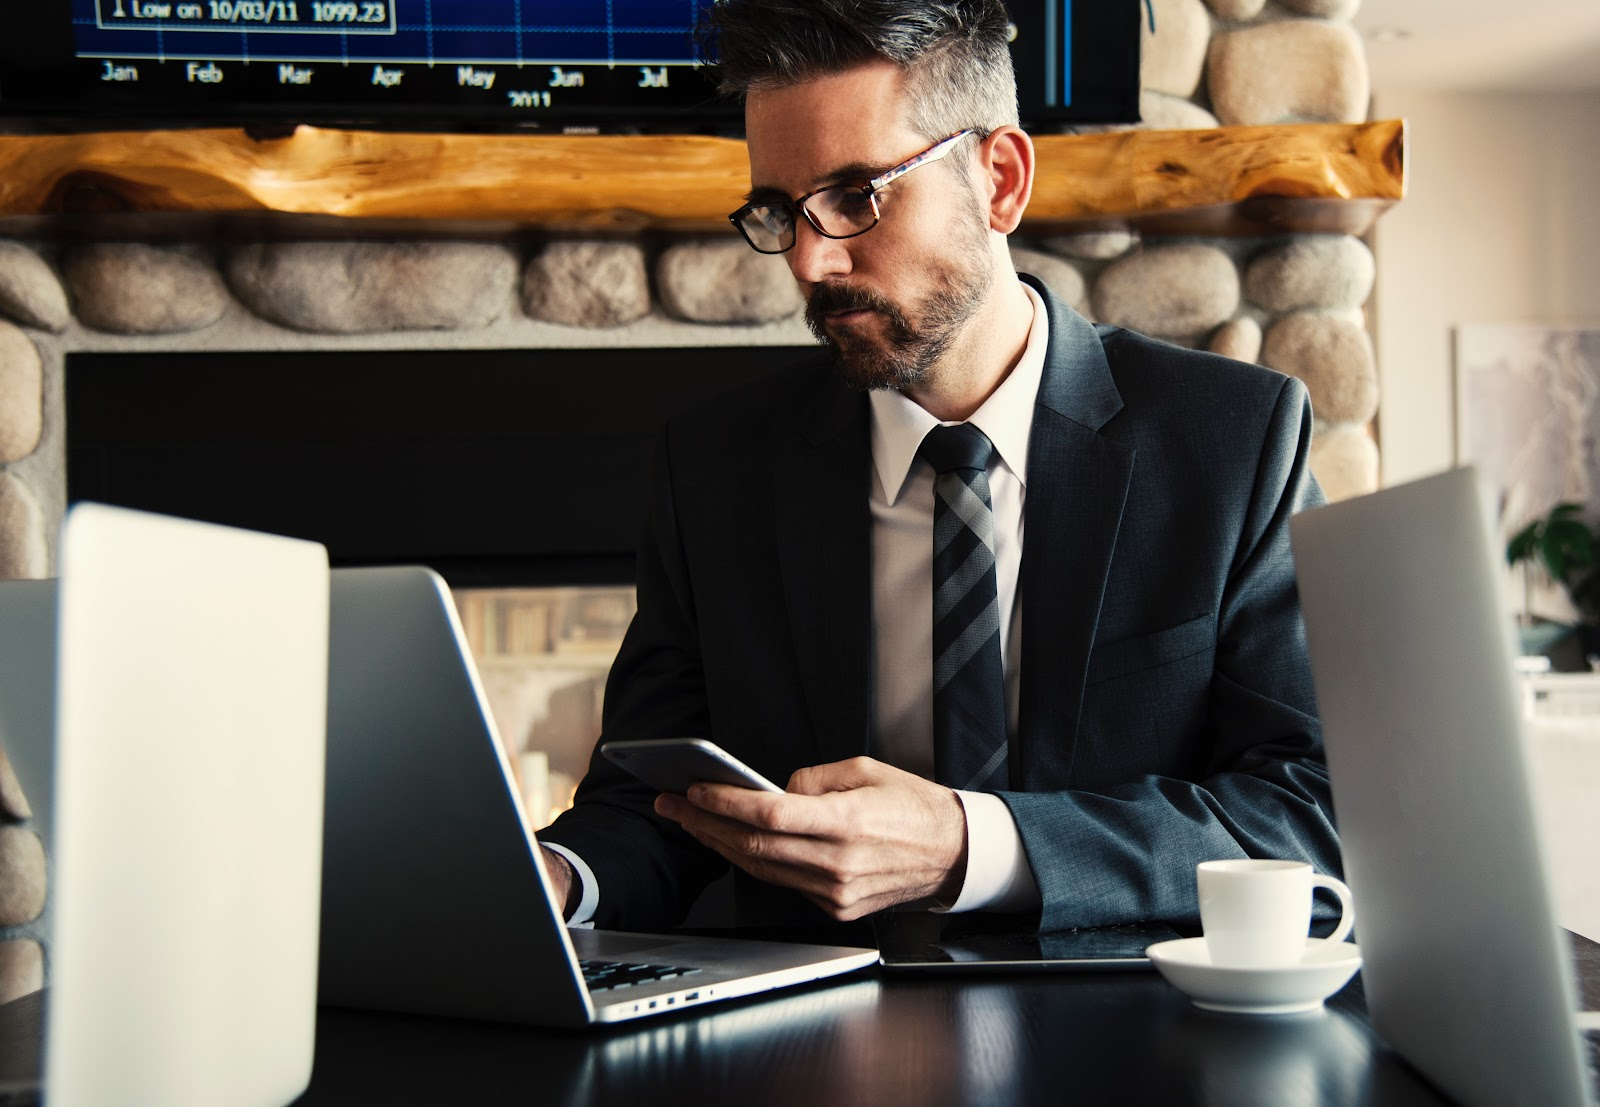 A man holds a phone and works on a laptop